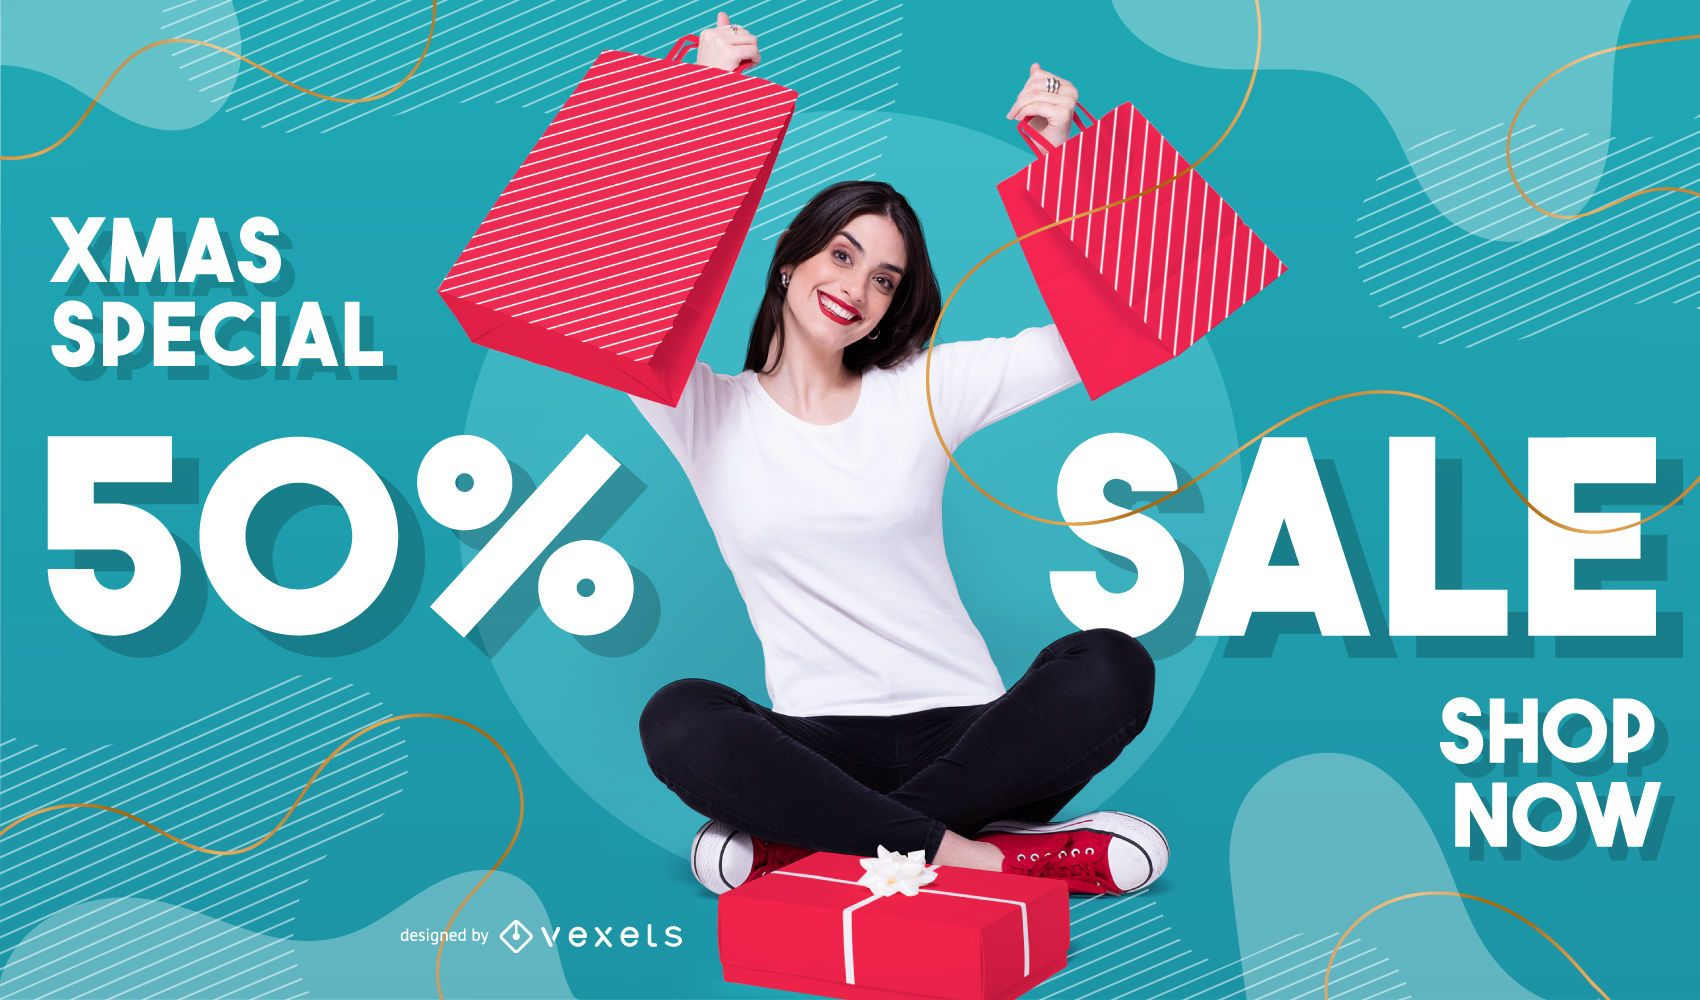 Xmas sale photo banner template